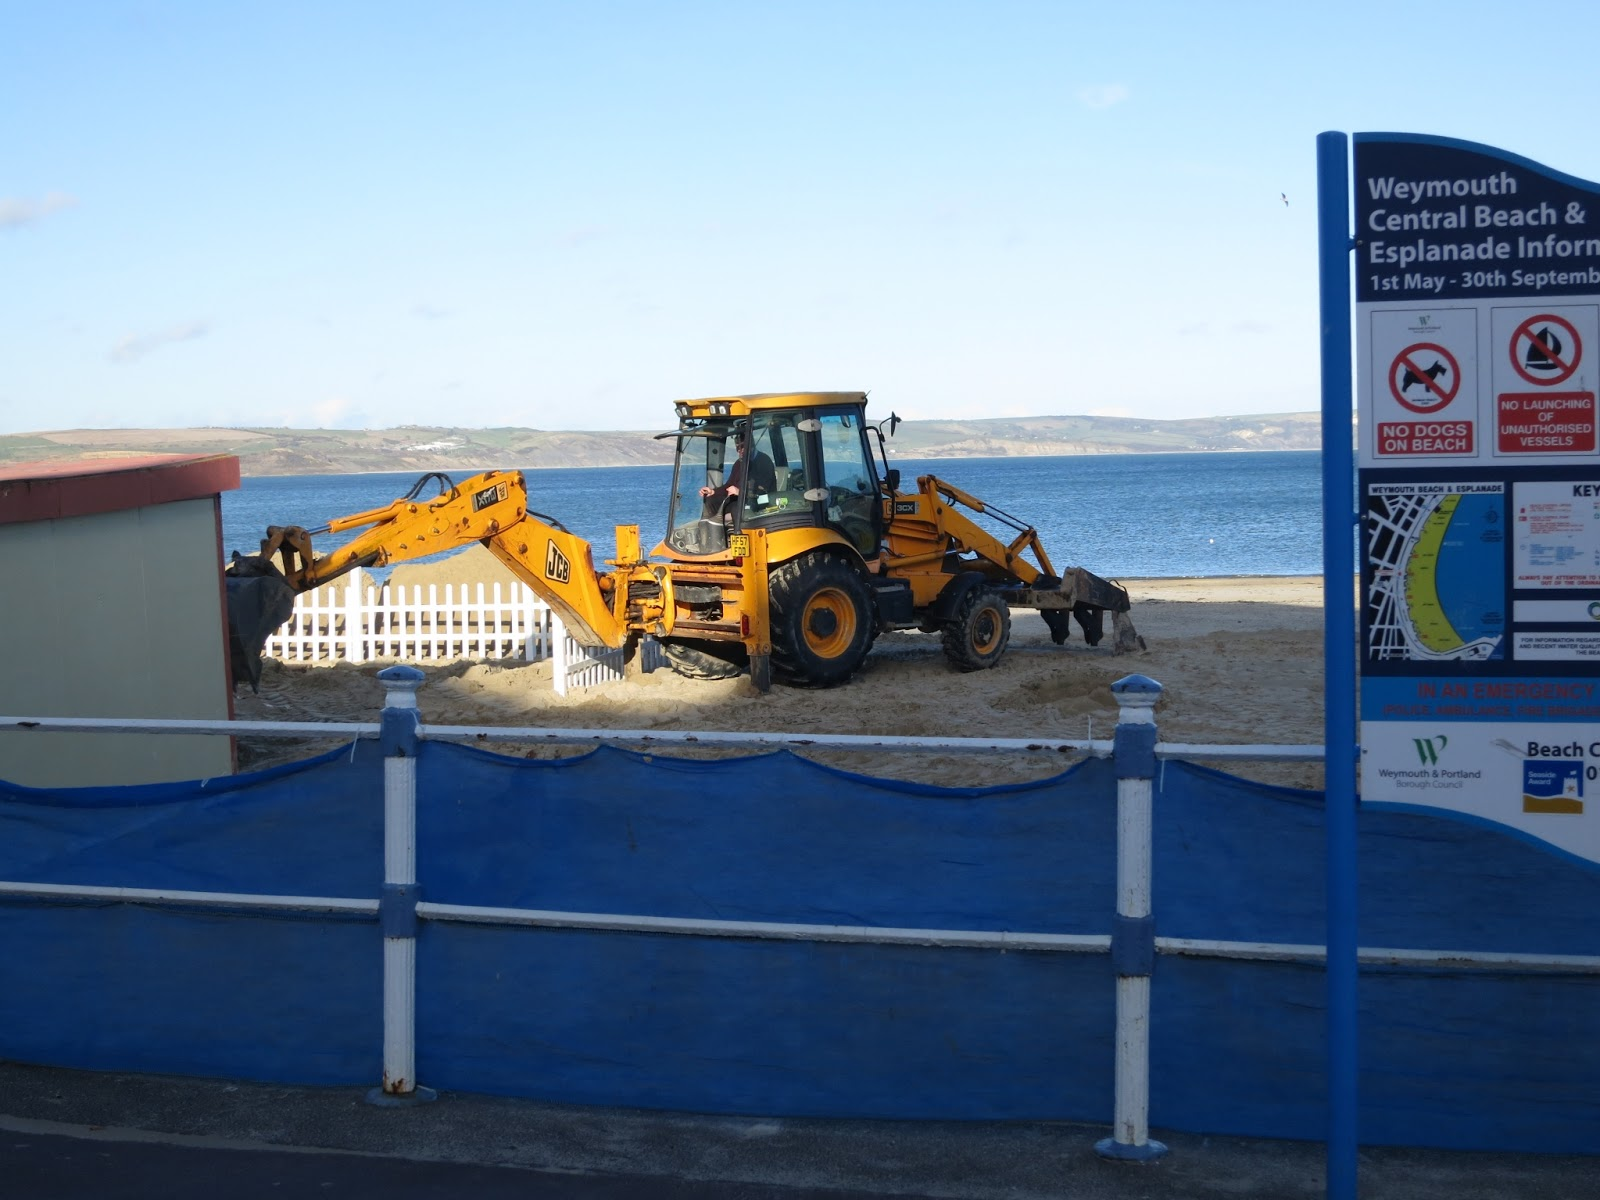 Digger digging donkey stop on Weymouth Beach.